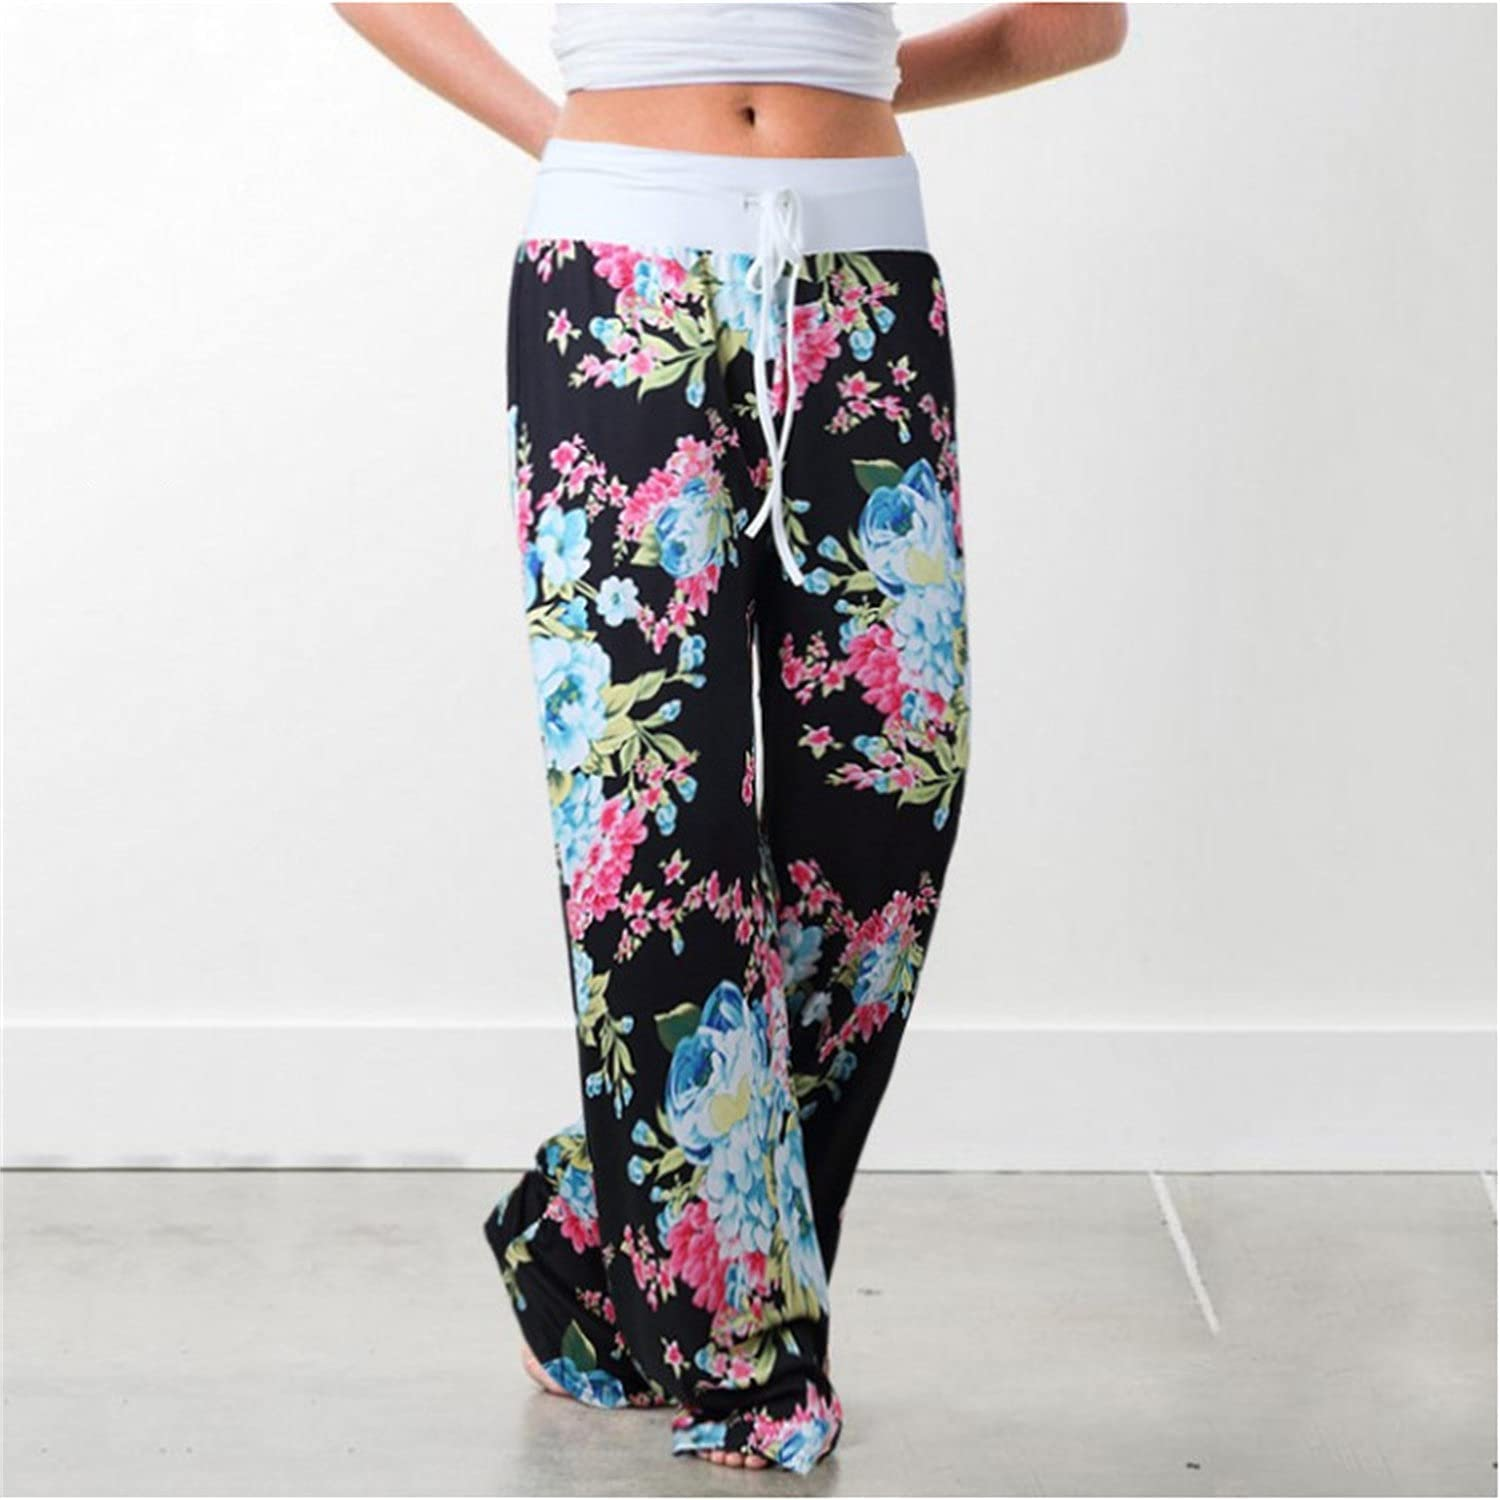 Women's Printed Wide-Leg Pants Comfy Stretch Floral Print Drawstring Lounge Trousers Casual Stretchy Casualpants (3X-Large,Black 3)